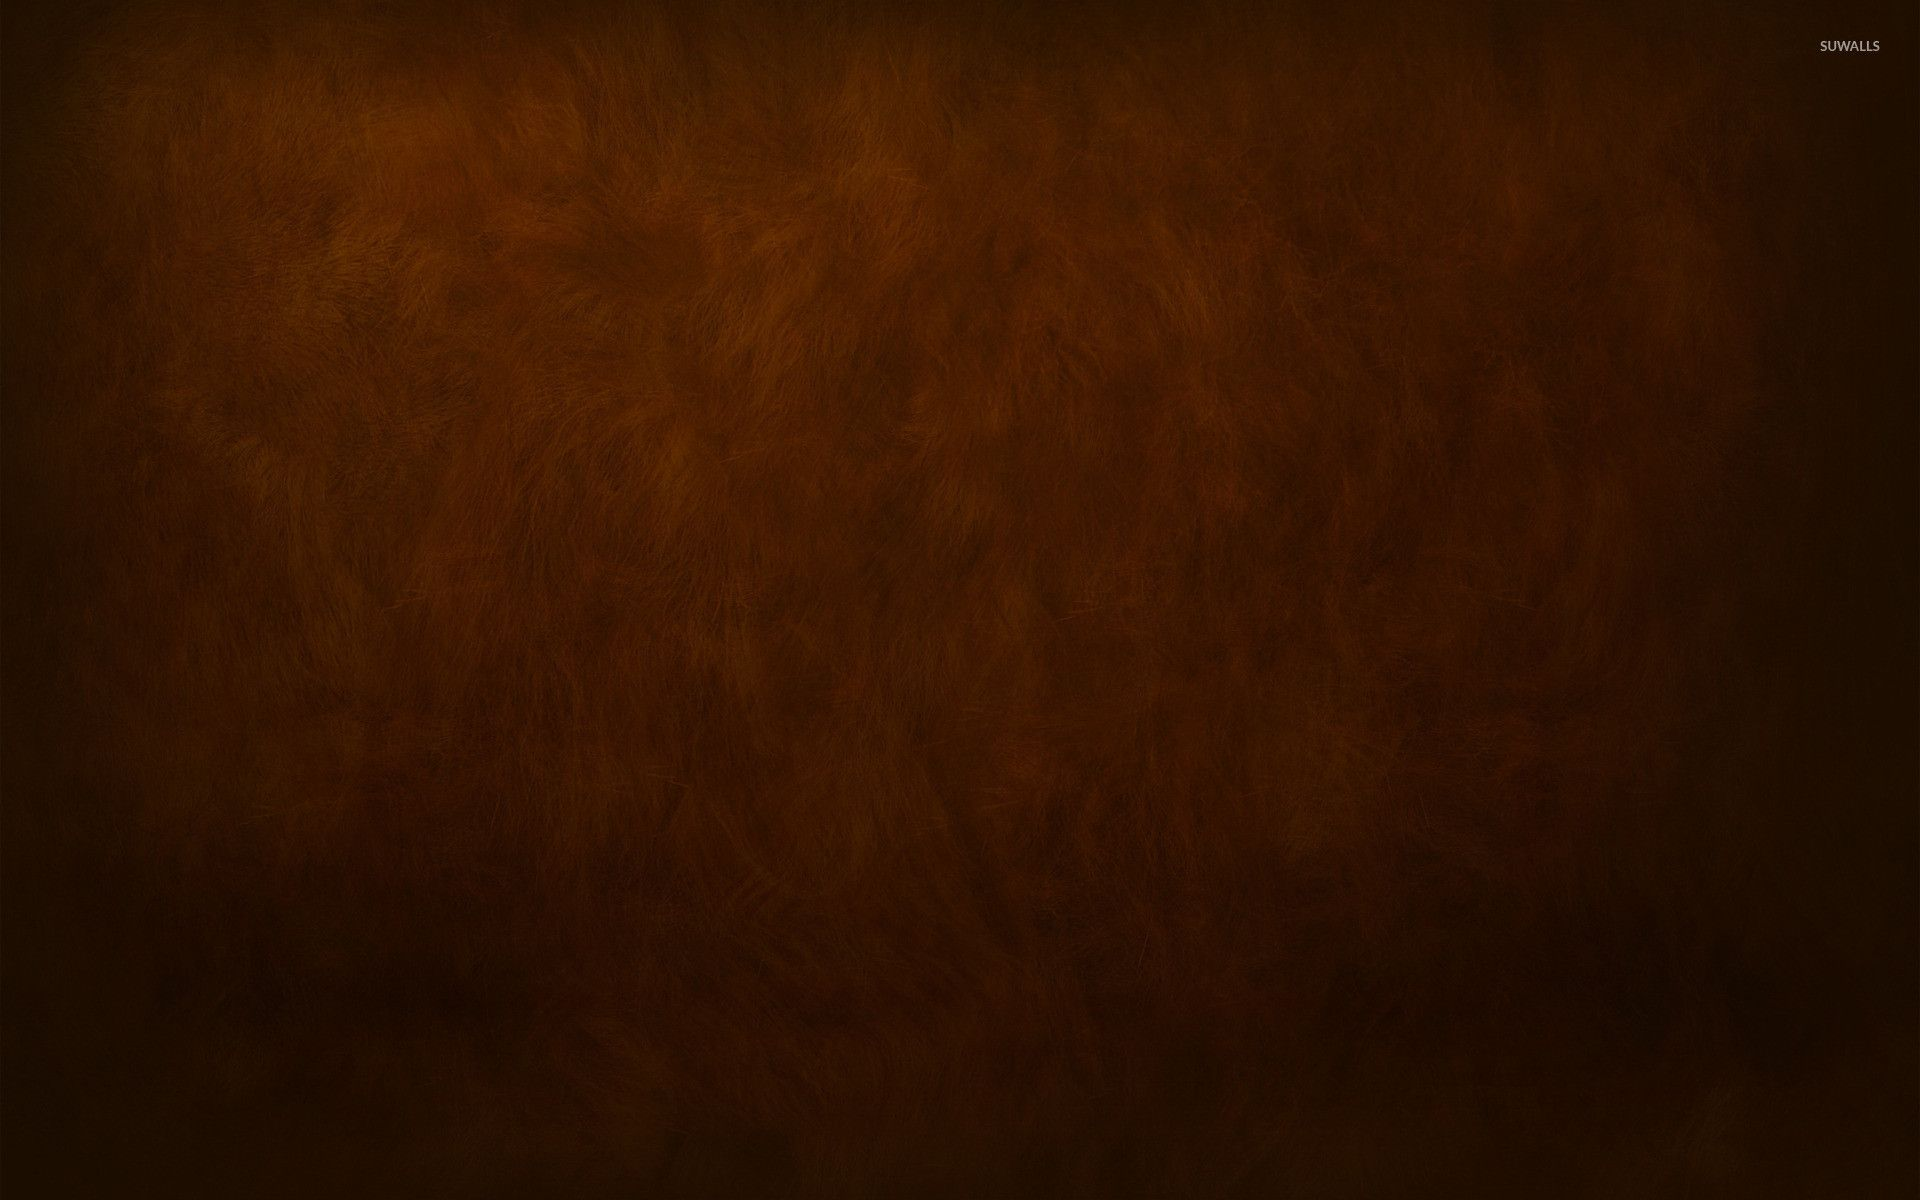 1920x1200 Brown Background Wallpaper (68+ images)